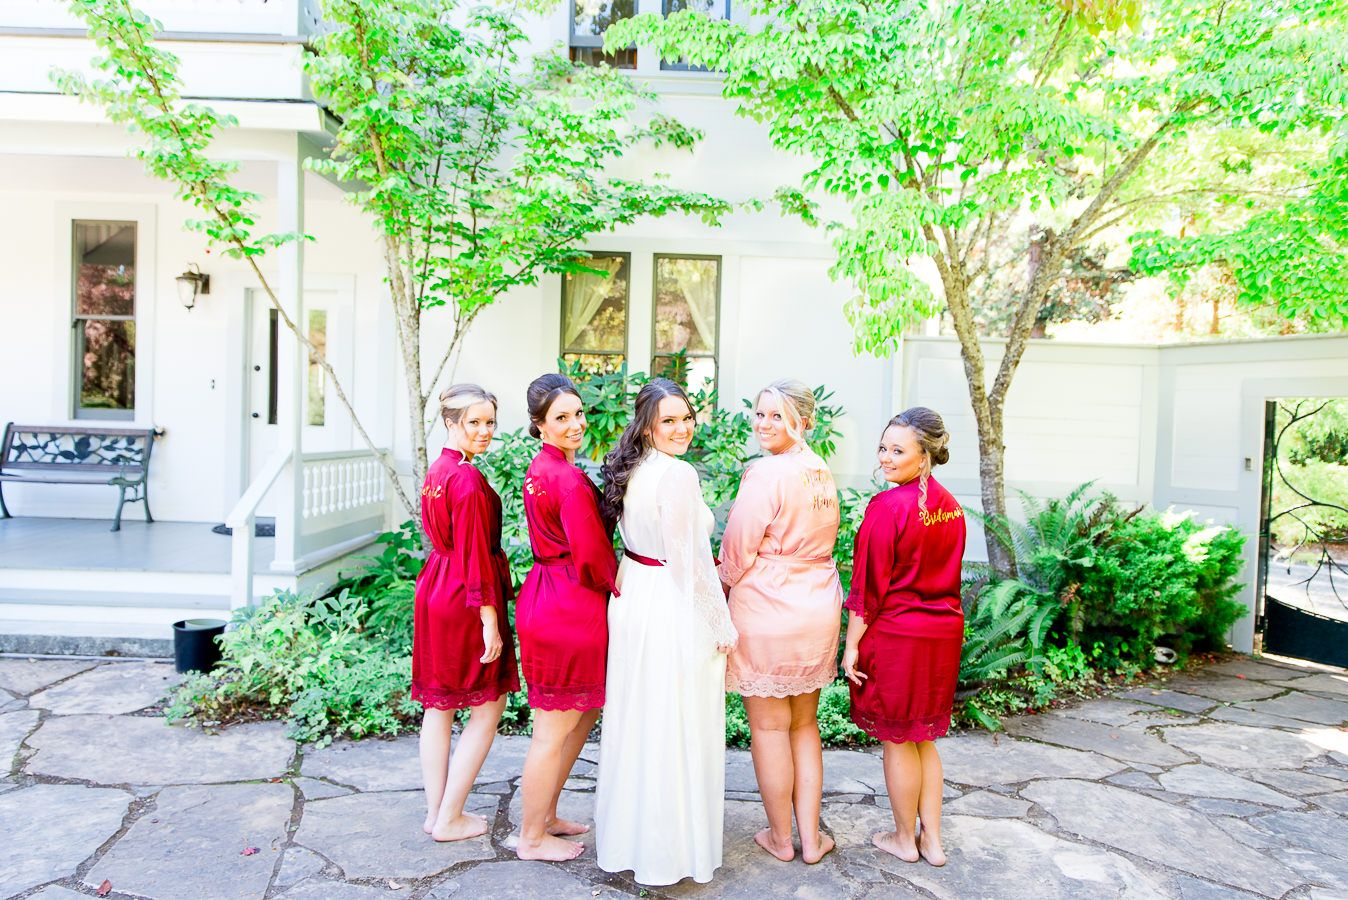 bridesmaids in red and blush stand next to bride on wedding day in September in California